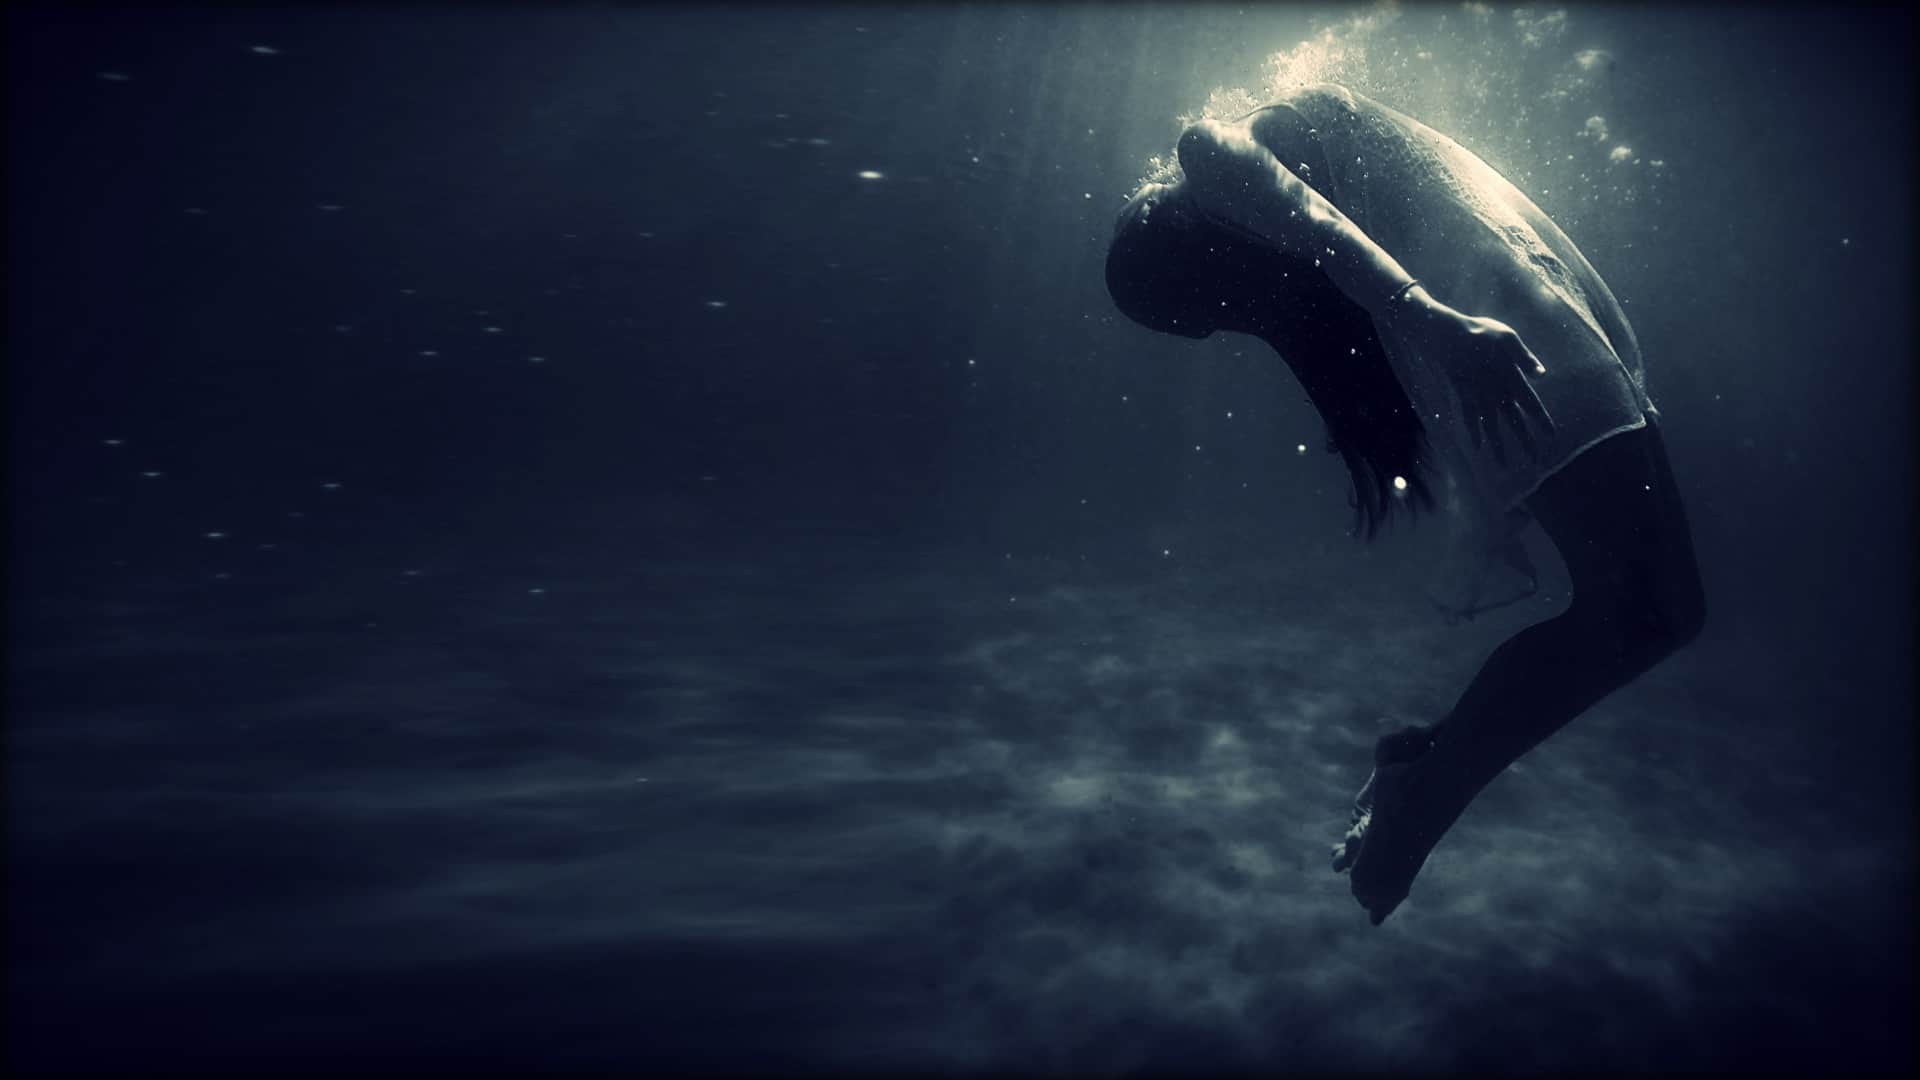 A fully dressed person is shown underwater. They are lit from above. The seabed is visible in the background. The person is arching backwards; their arms are at their sides and their legs bent at the knees. Air bubbles are escaping from their mouth.